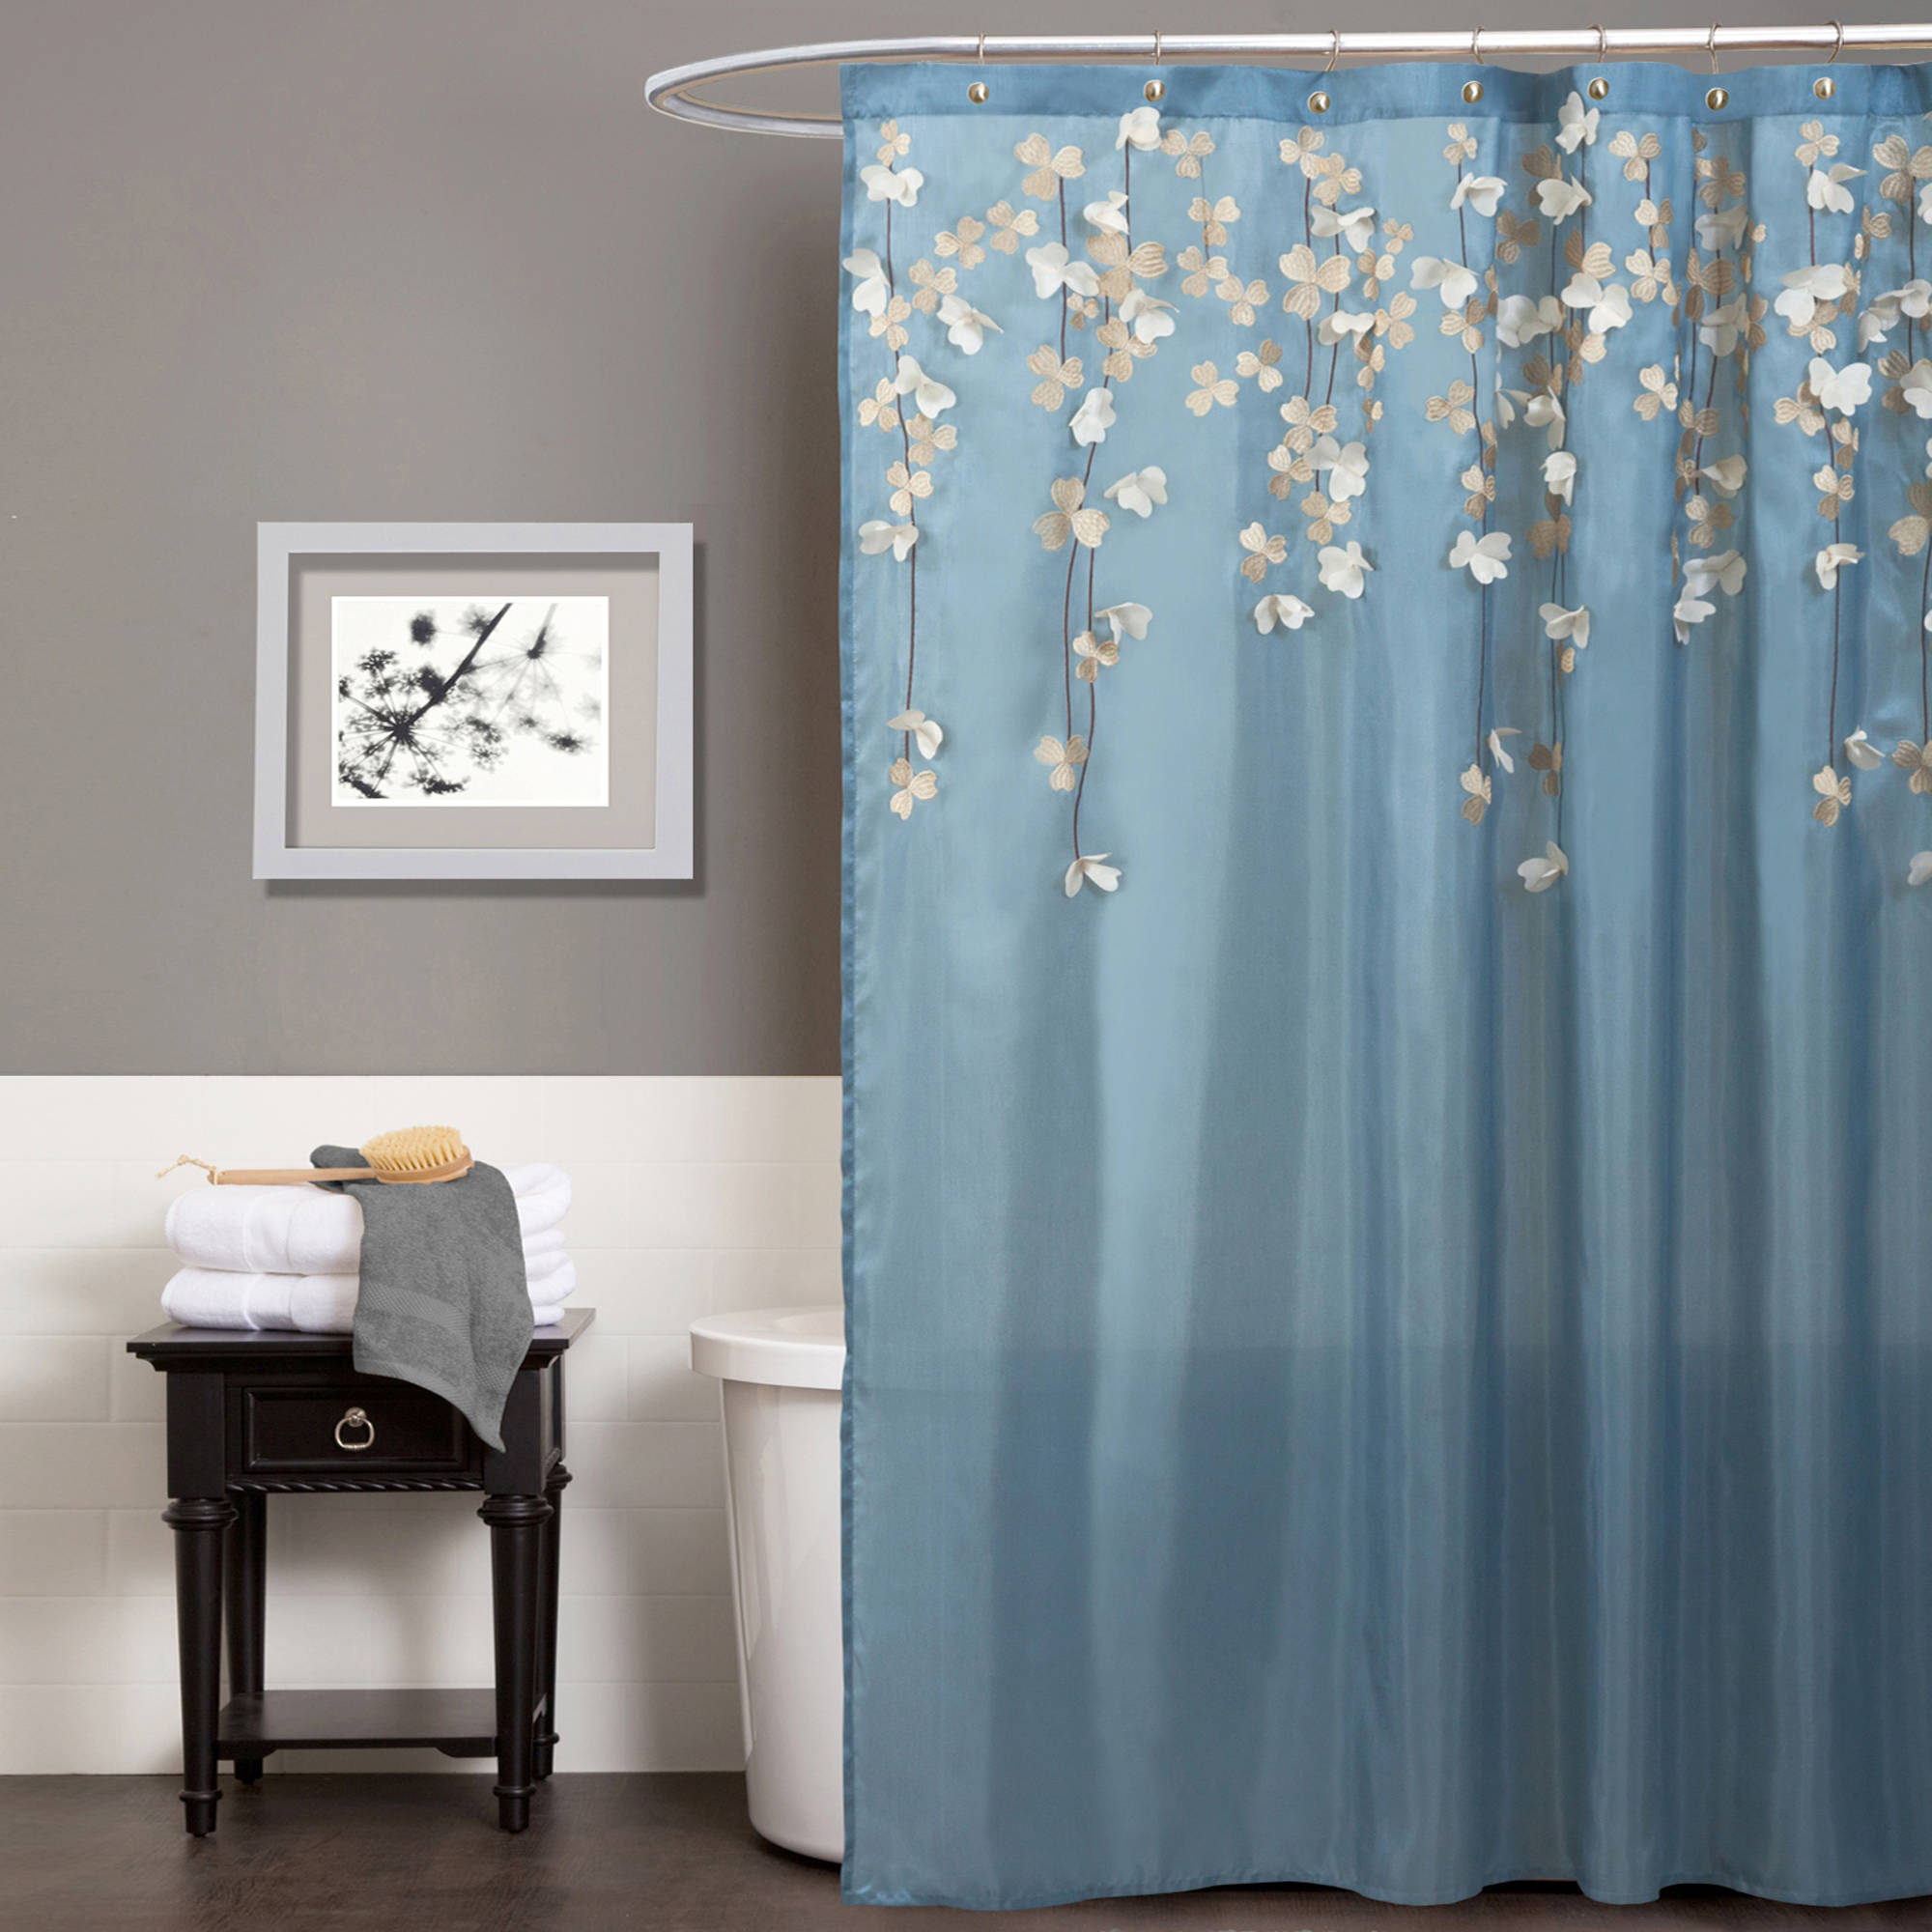 Shower Curtains Walmart Within Dimensions 2000 X